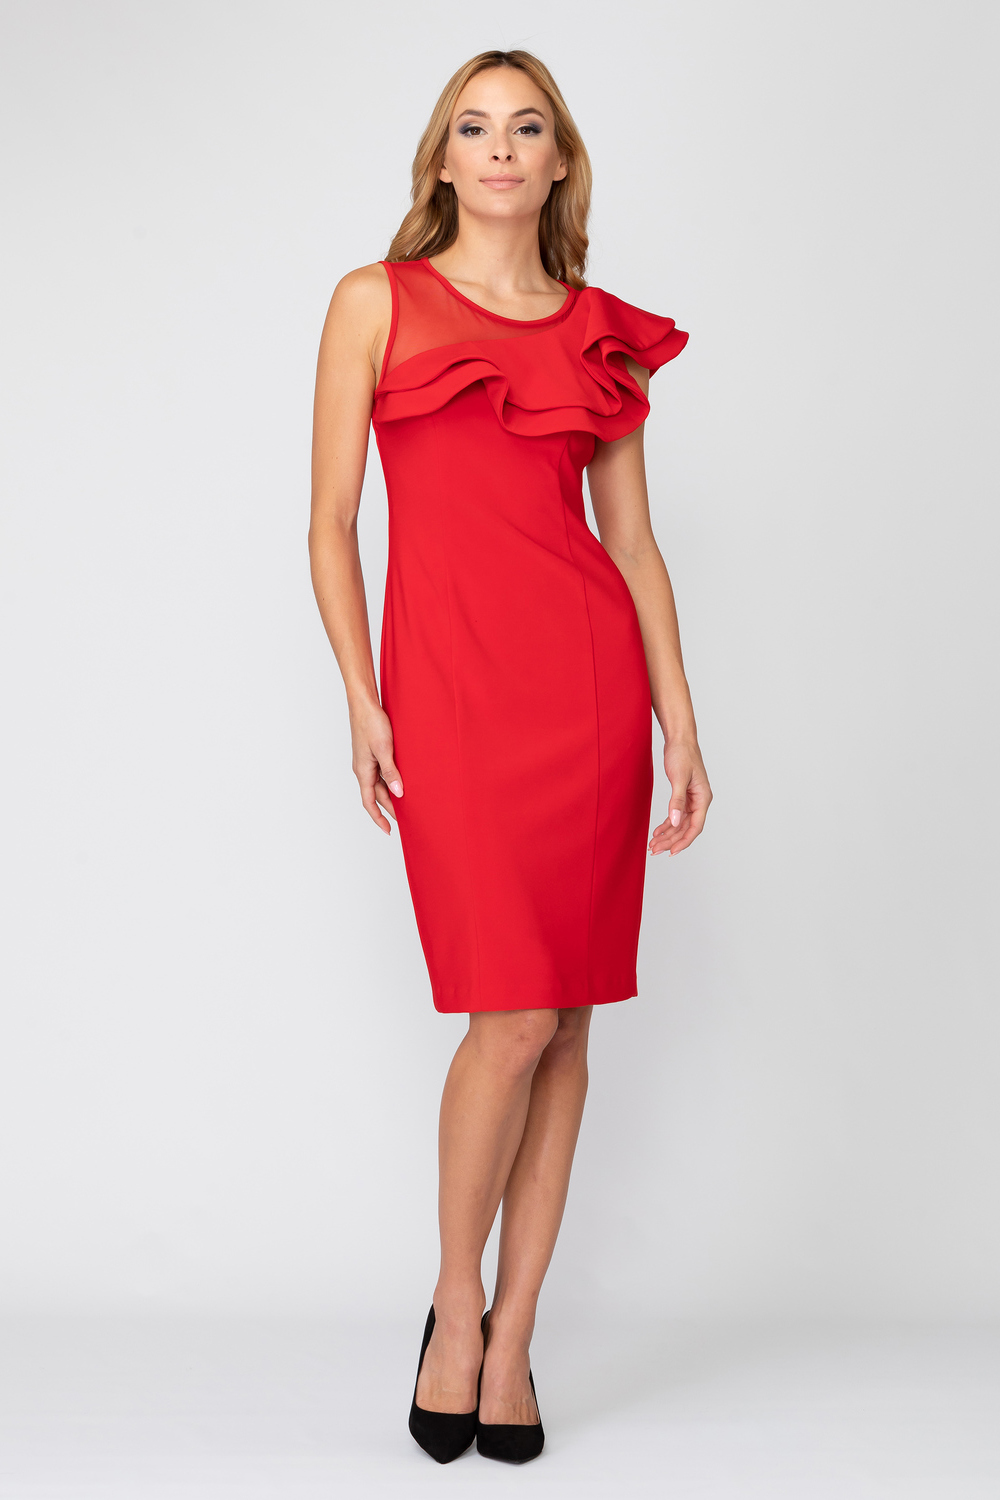 Joseph Ribkoff Robes Rouge A Levres 173 Style 193298